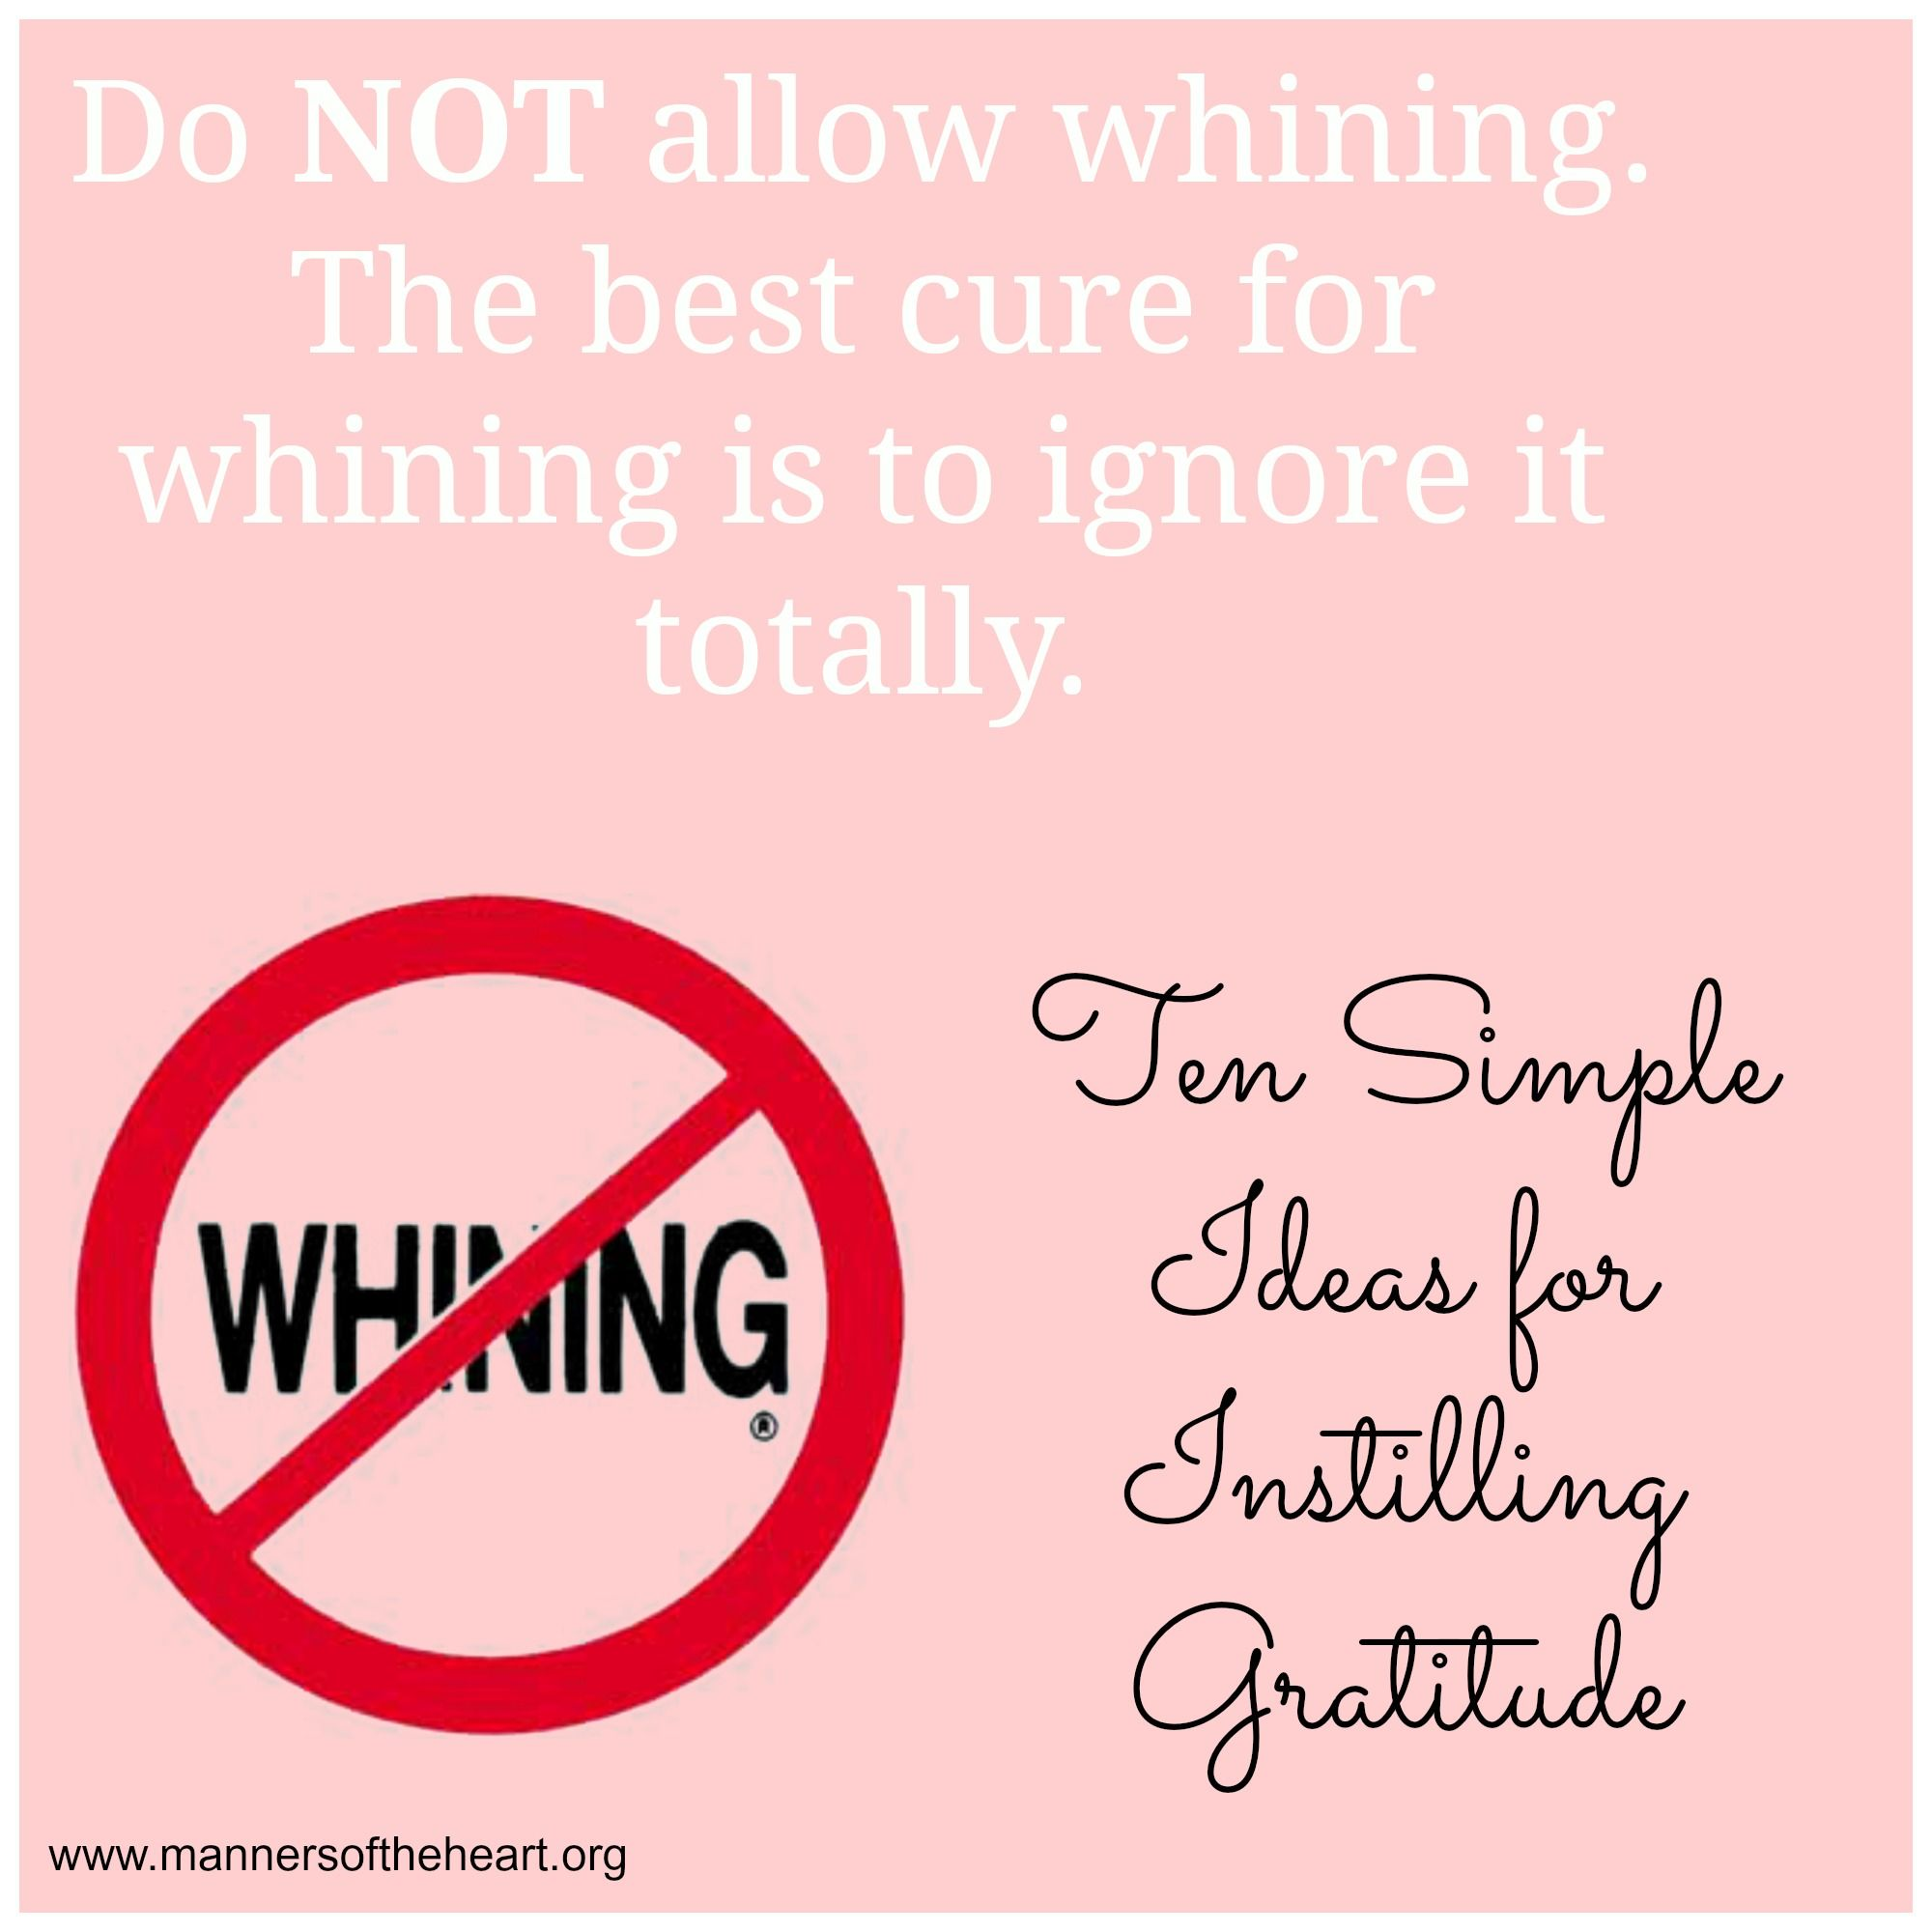 Do not allow whining. The best cure for whining is to ignore it totally.